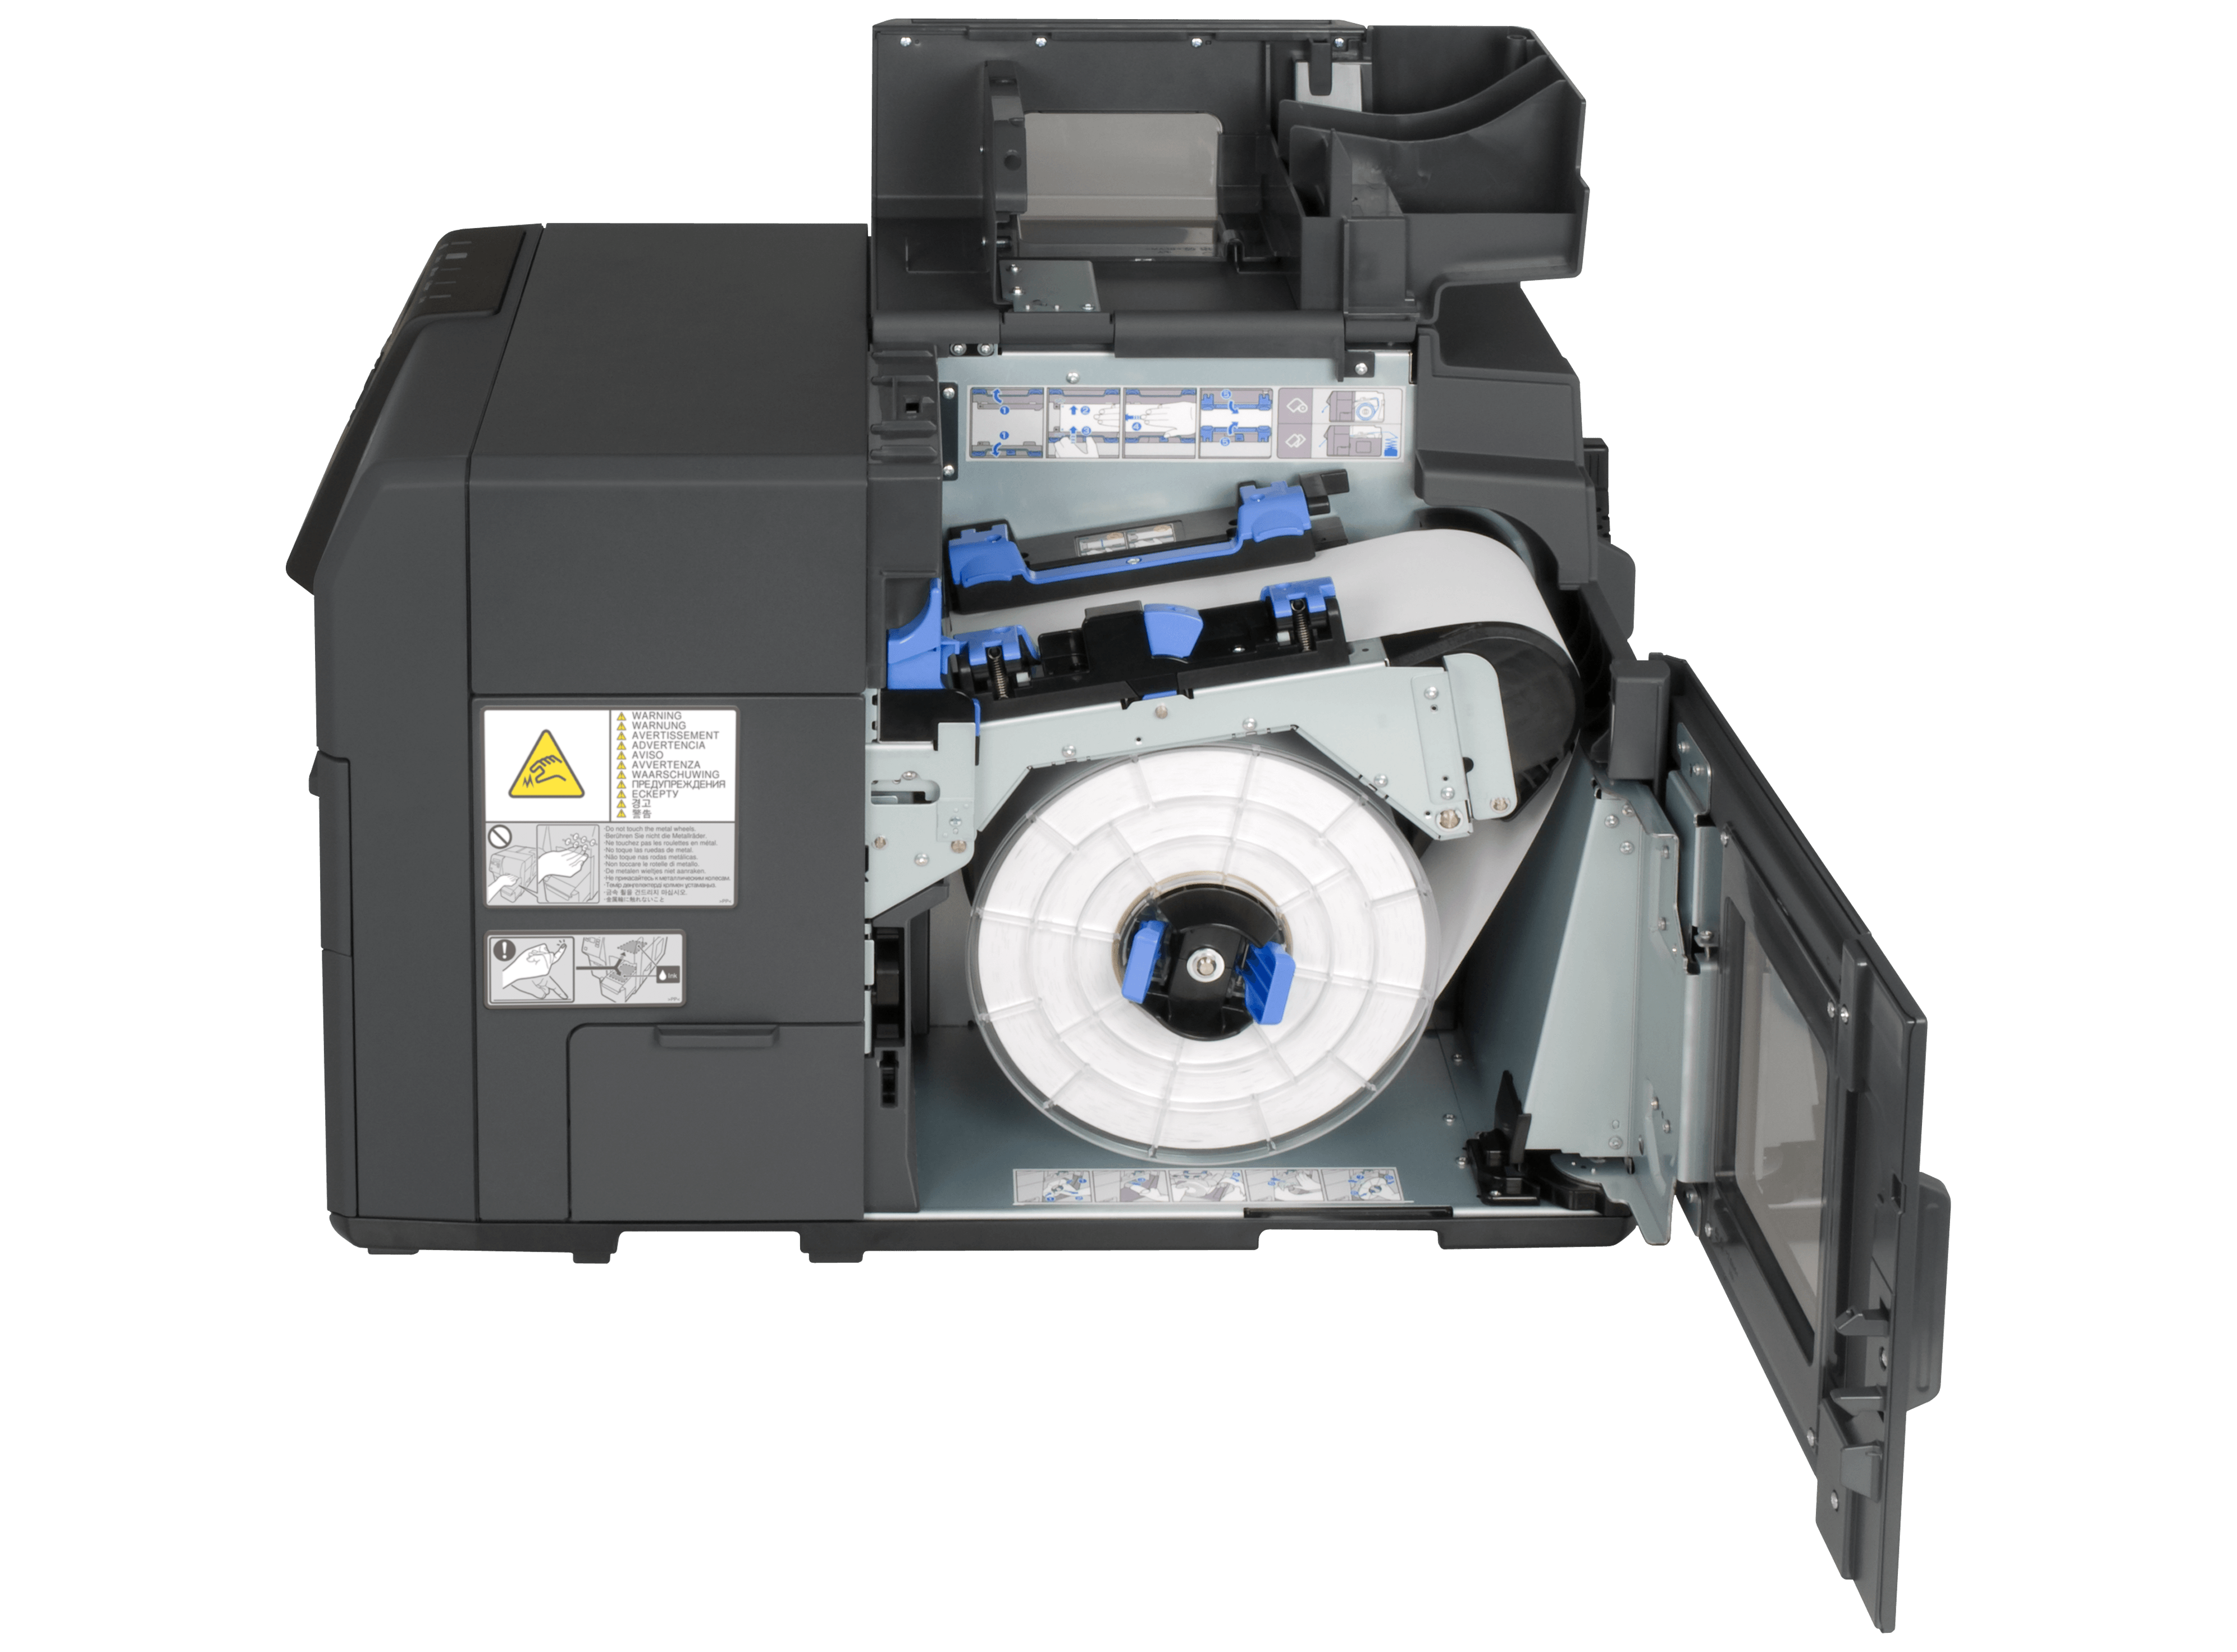 Epson ColorWorks C7500 offen.png